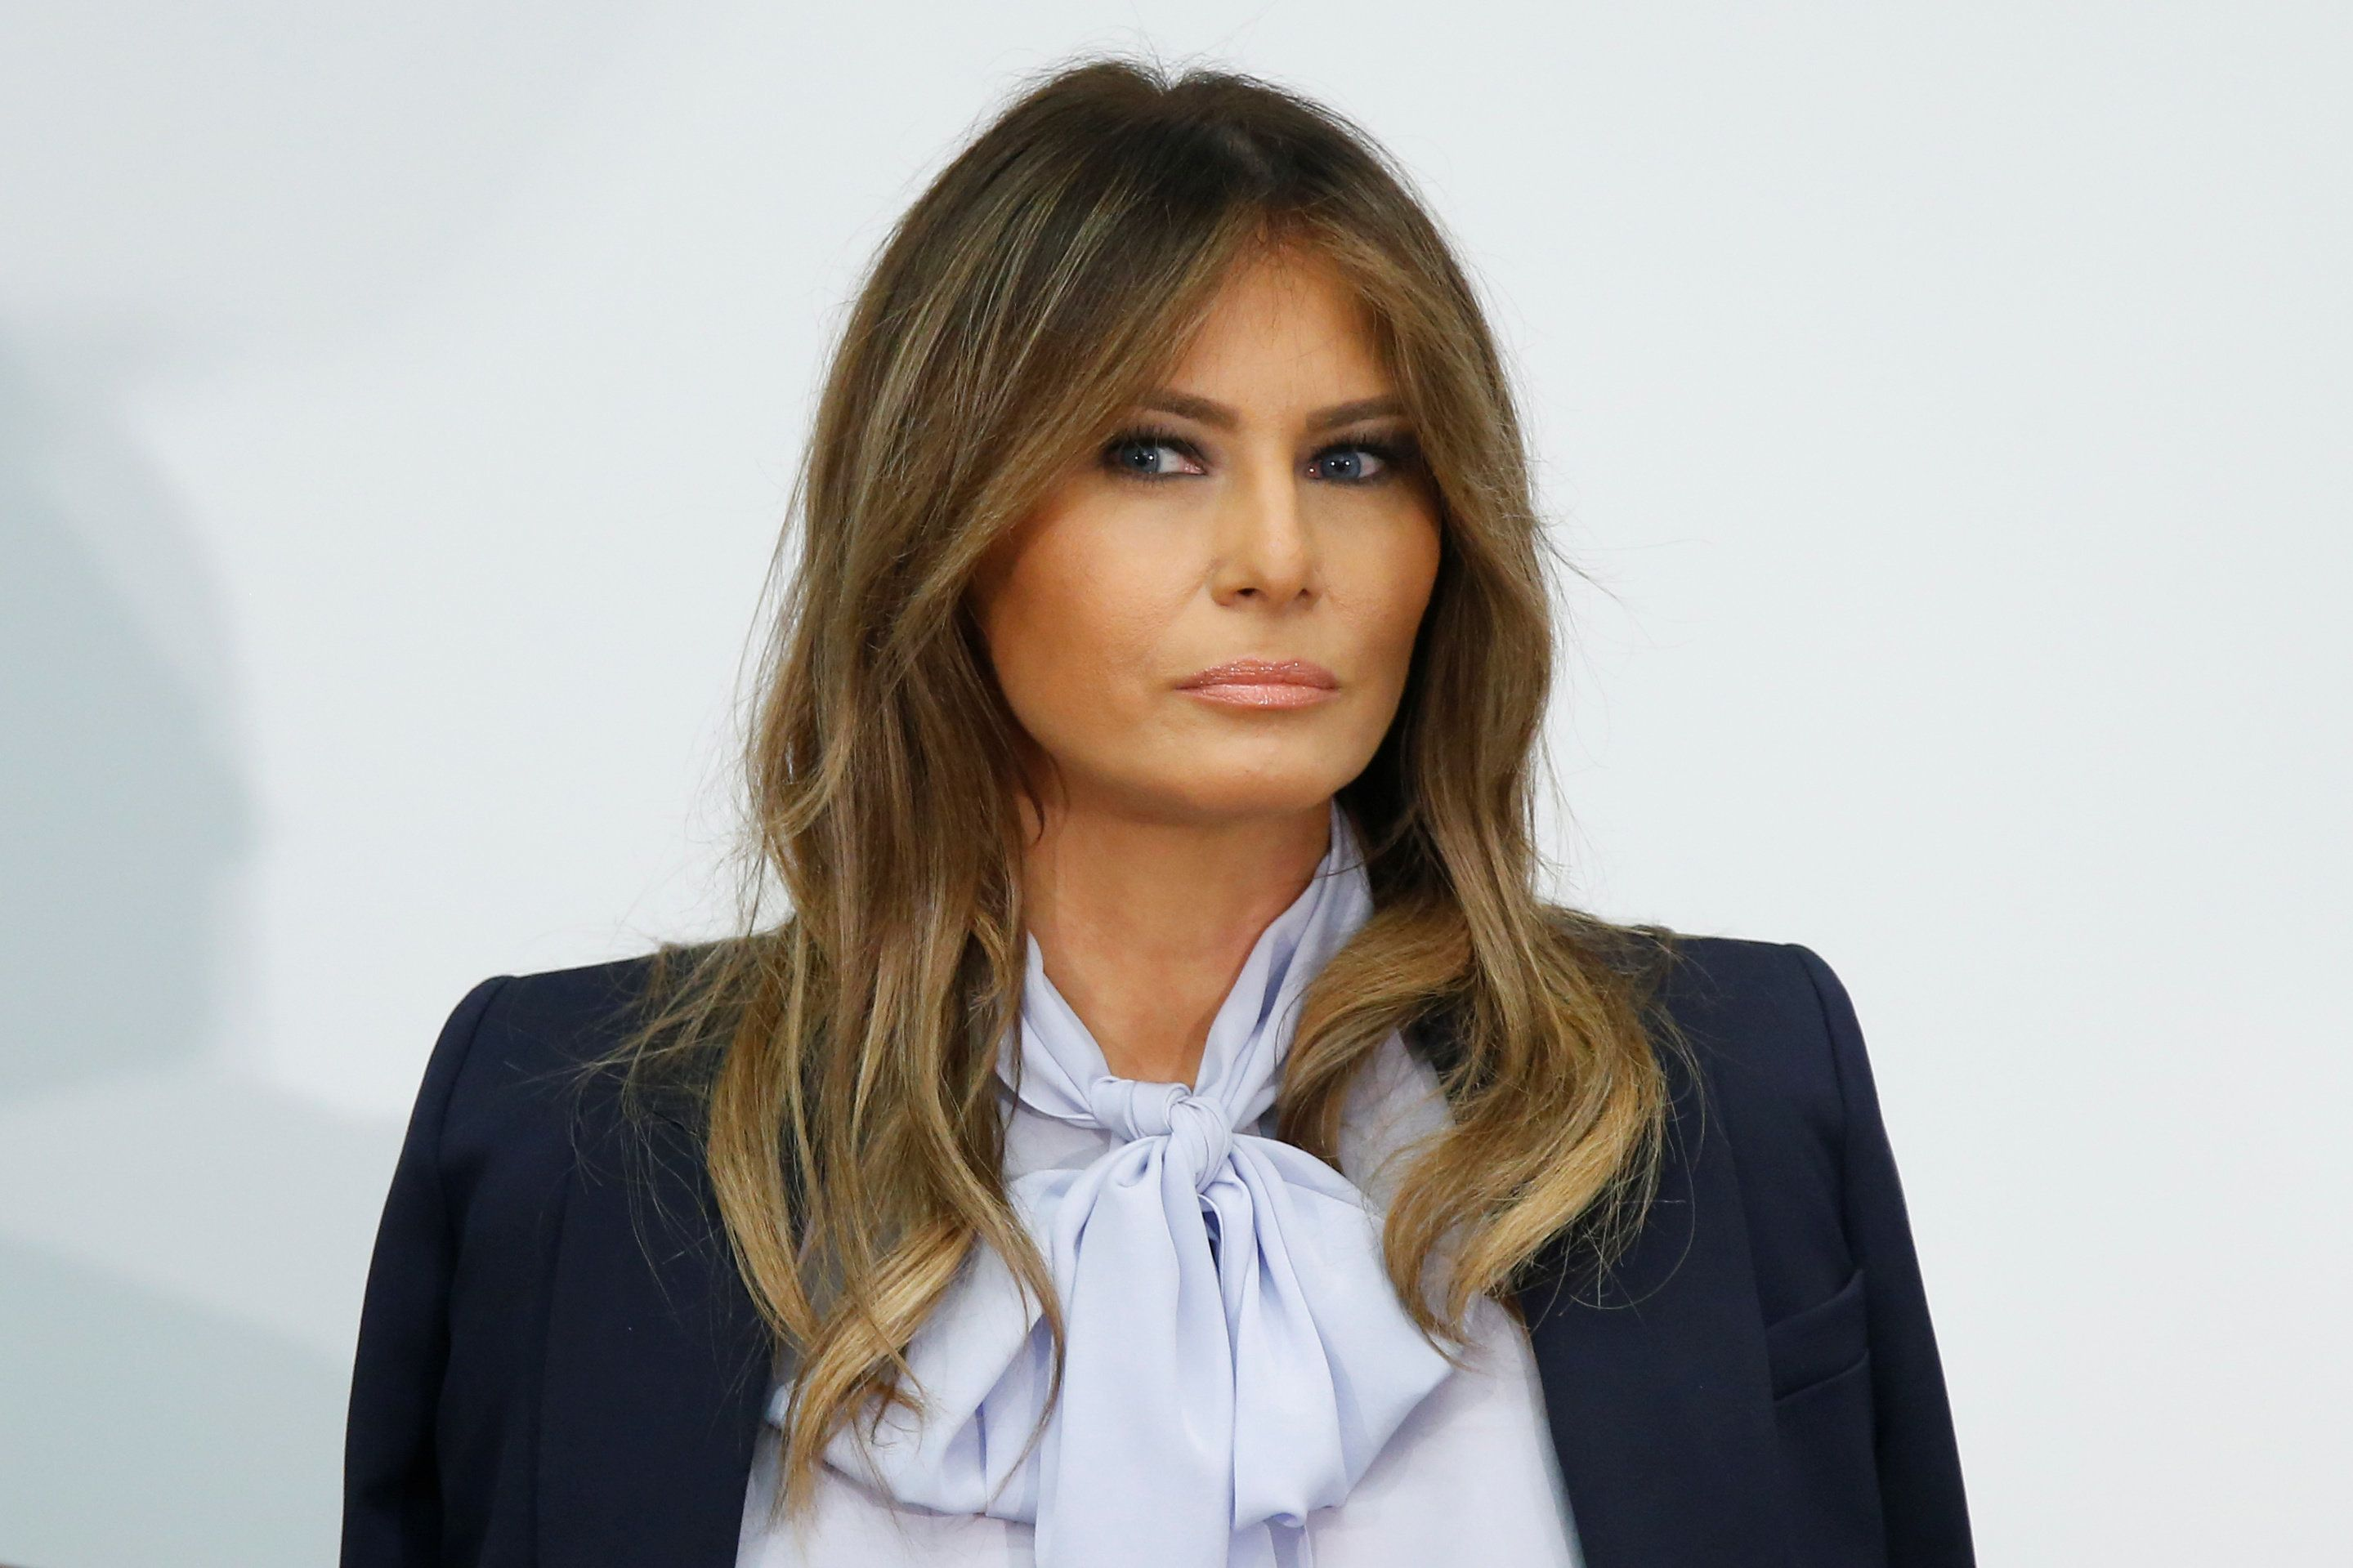 U.S. first lady Melania Trump attends the Federal Partners in Bullying Prevention (FPBP) Cyberbullying Prevention Summit on the positive and negative effects of social media on youth in Rockville, Maryland, U.S., August 20, 2018. REUTERS/Chris Wattie